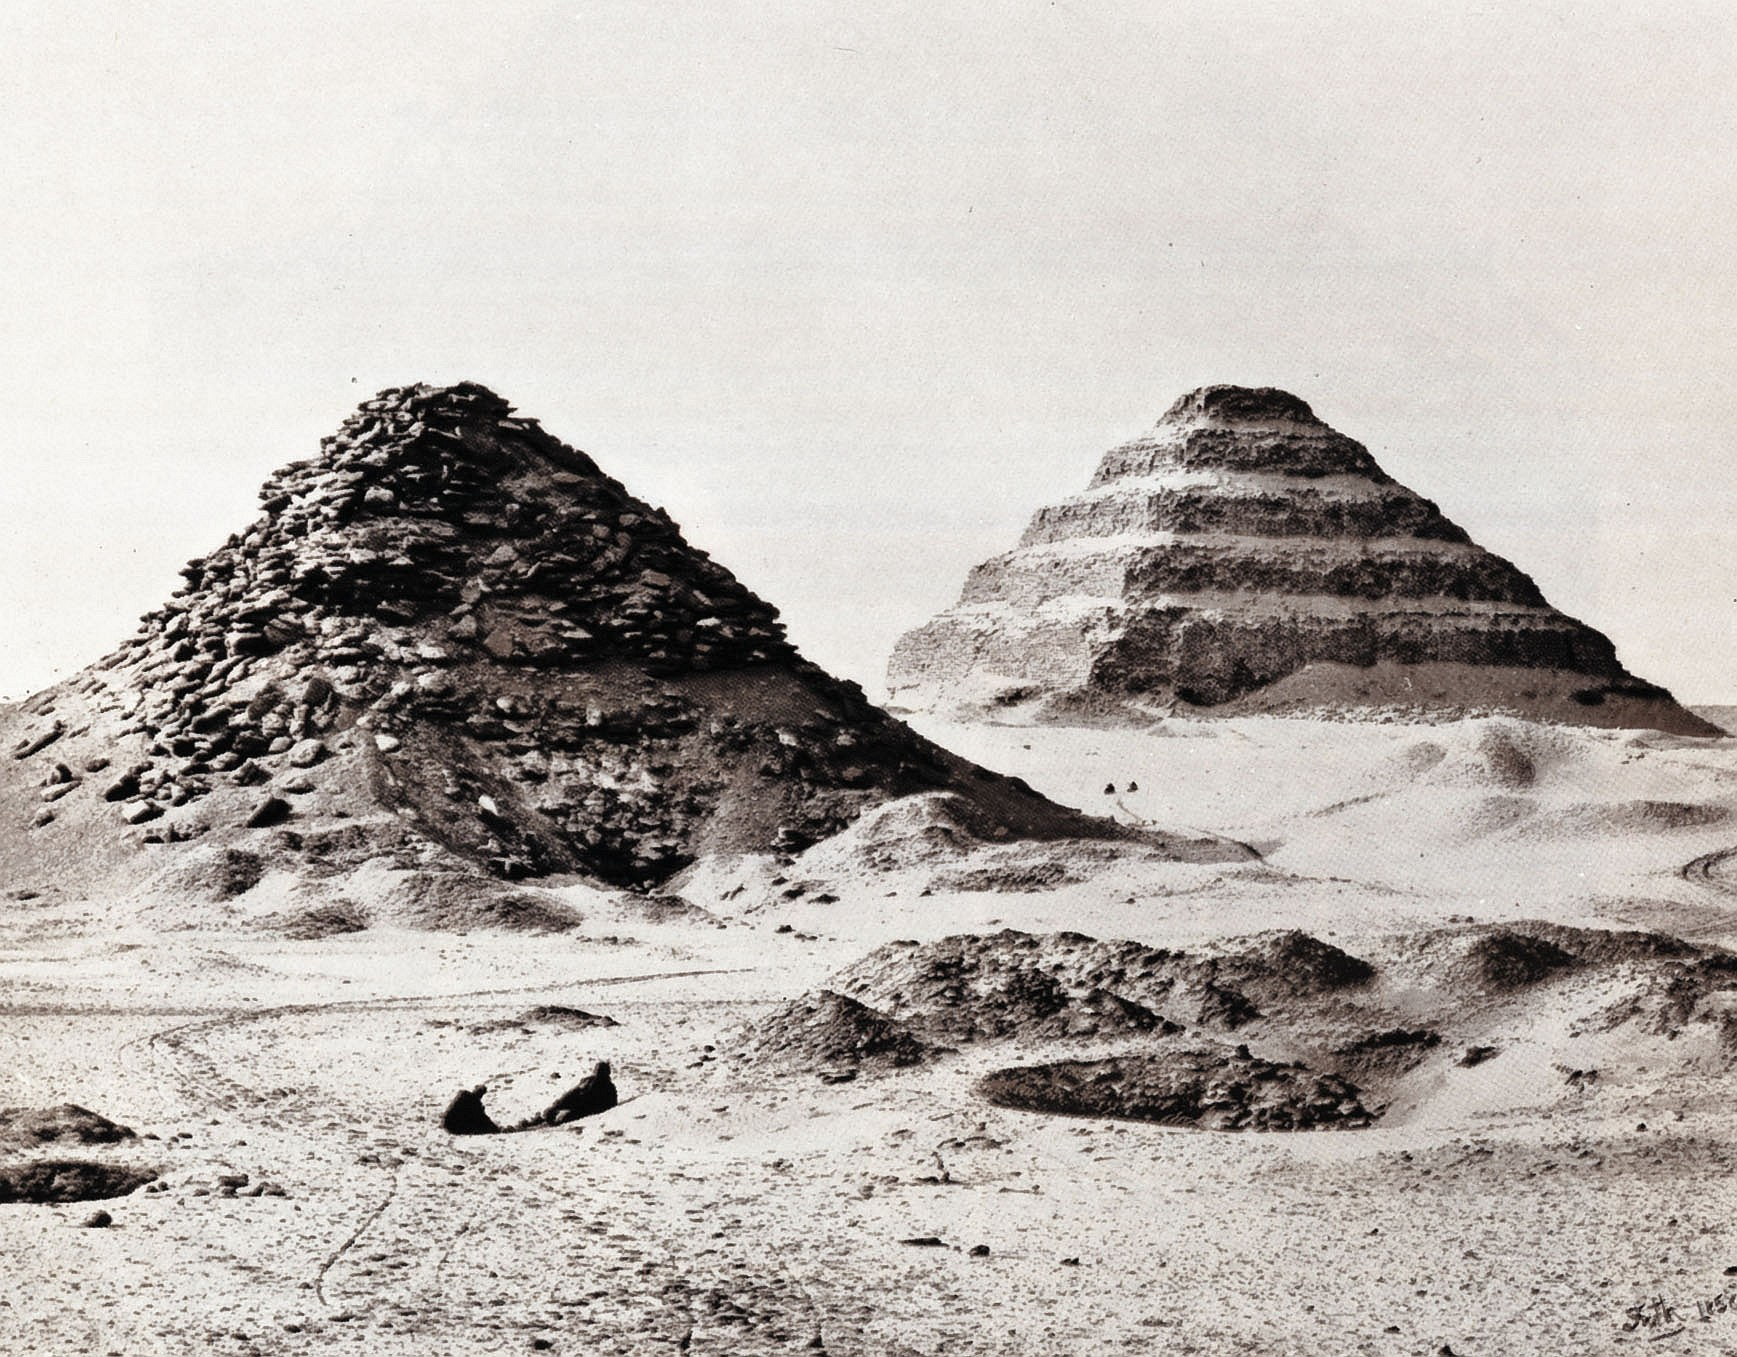 Egypt at the time of Flaubert